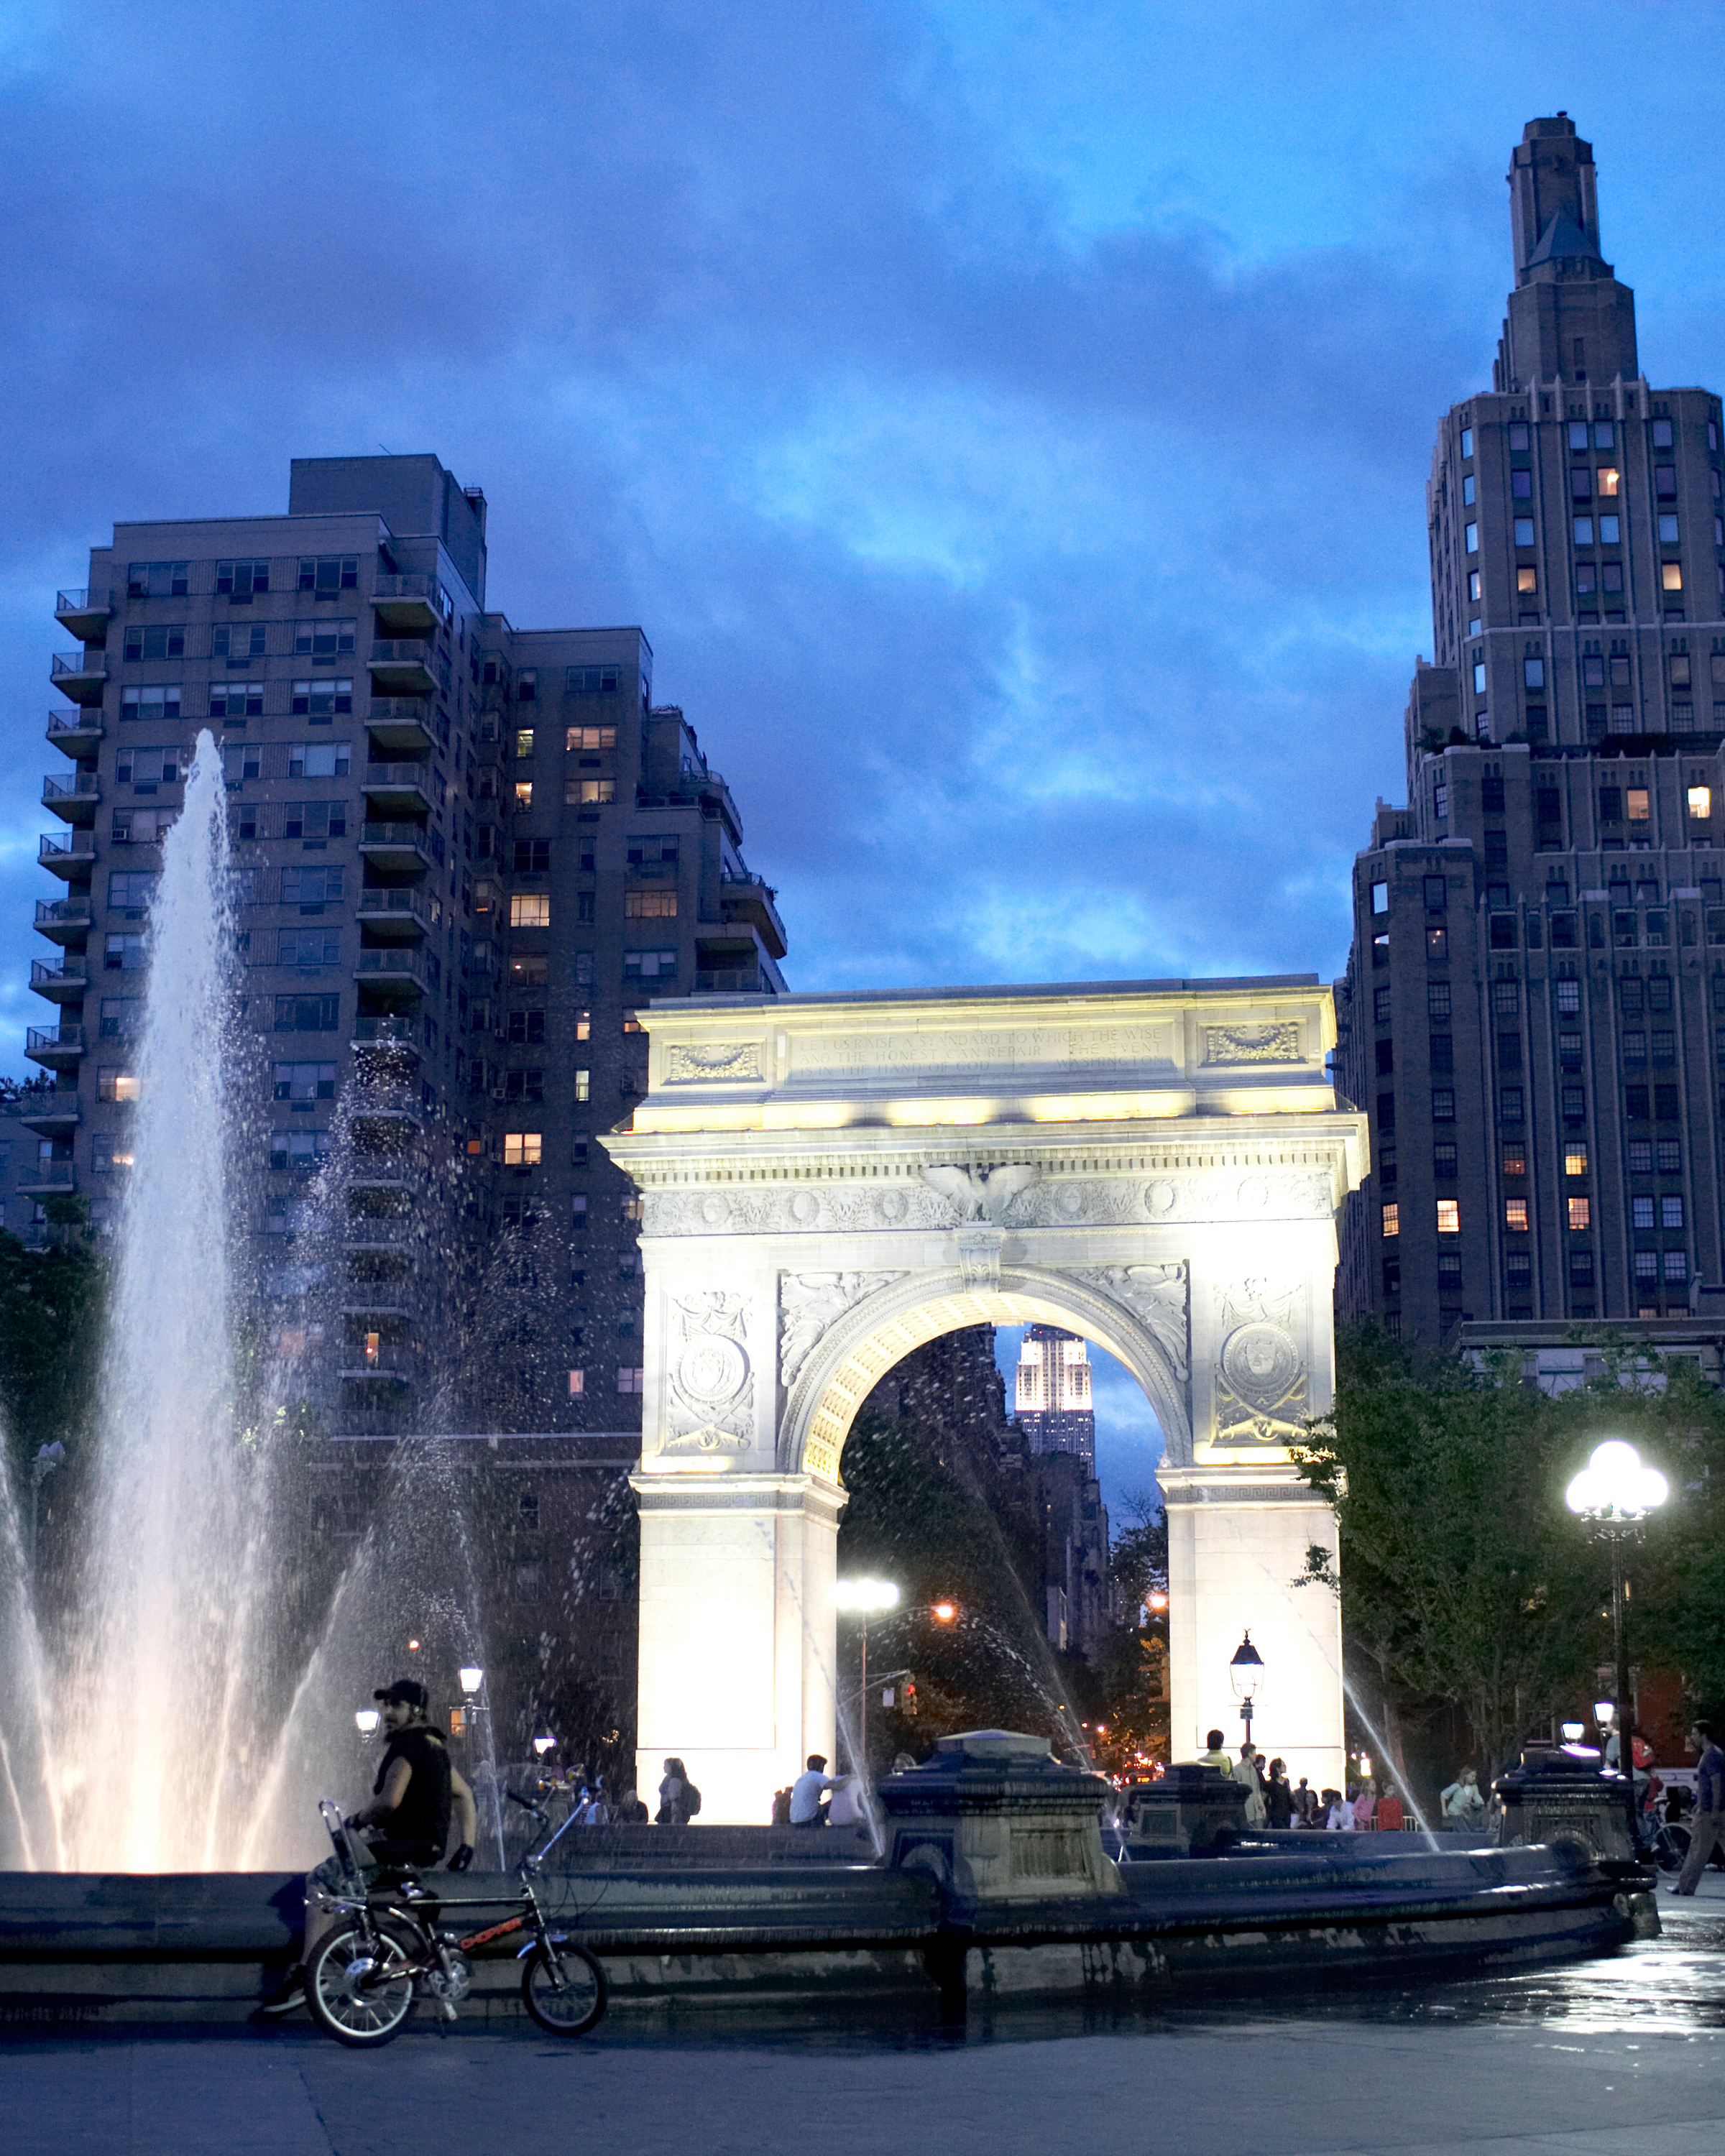 nyc-proposal-spot-washington-square-park-1114.jpg